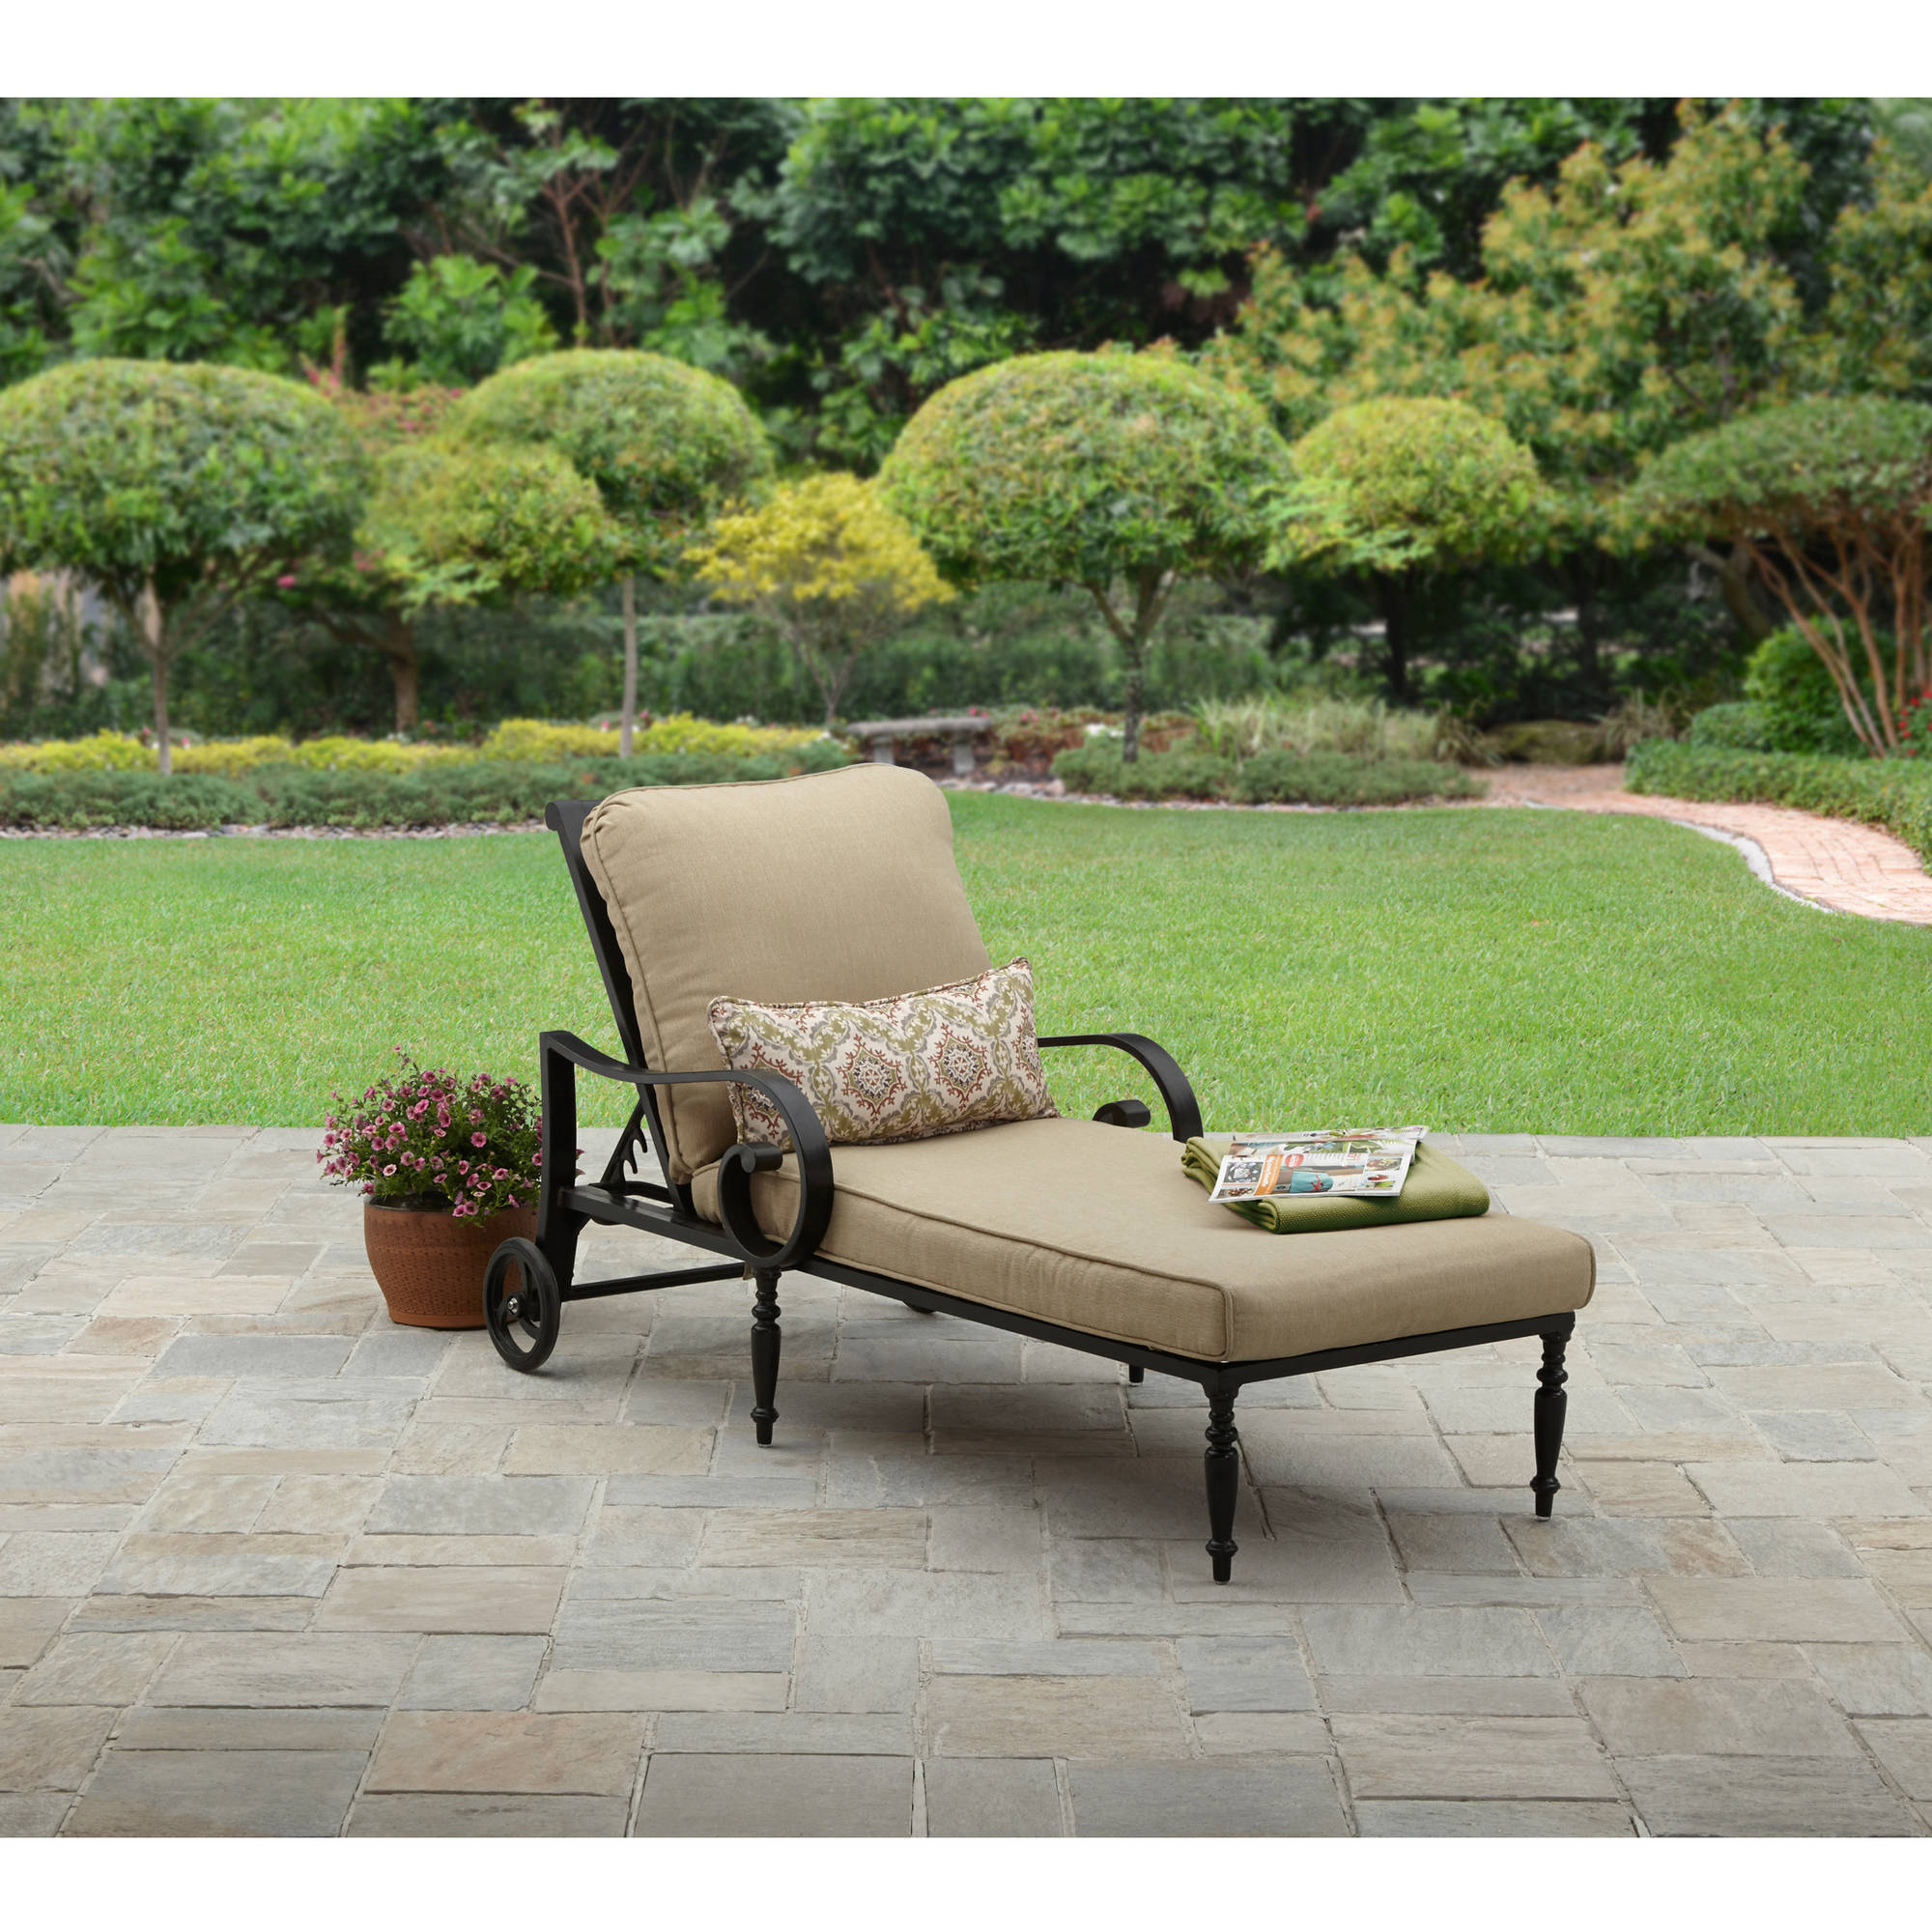 Better Homes and Gardens Englewood Heights II Aluminum Chaise Lounge